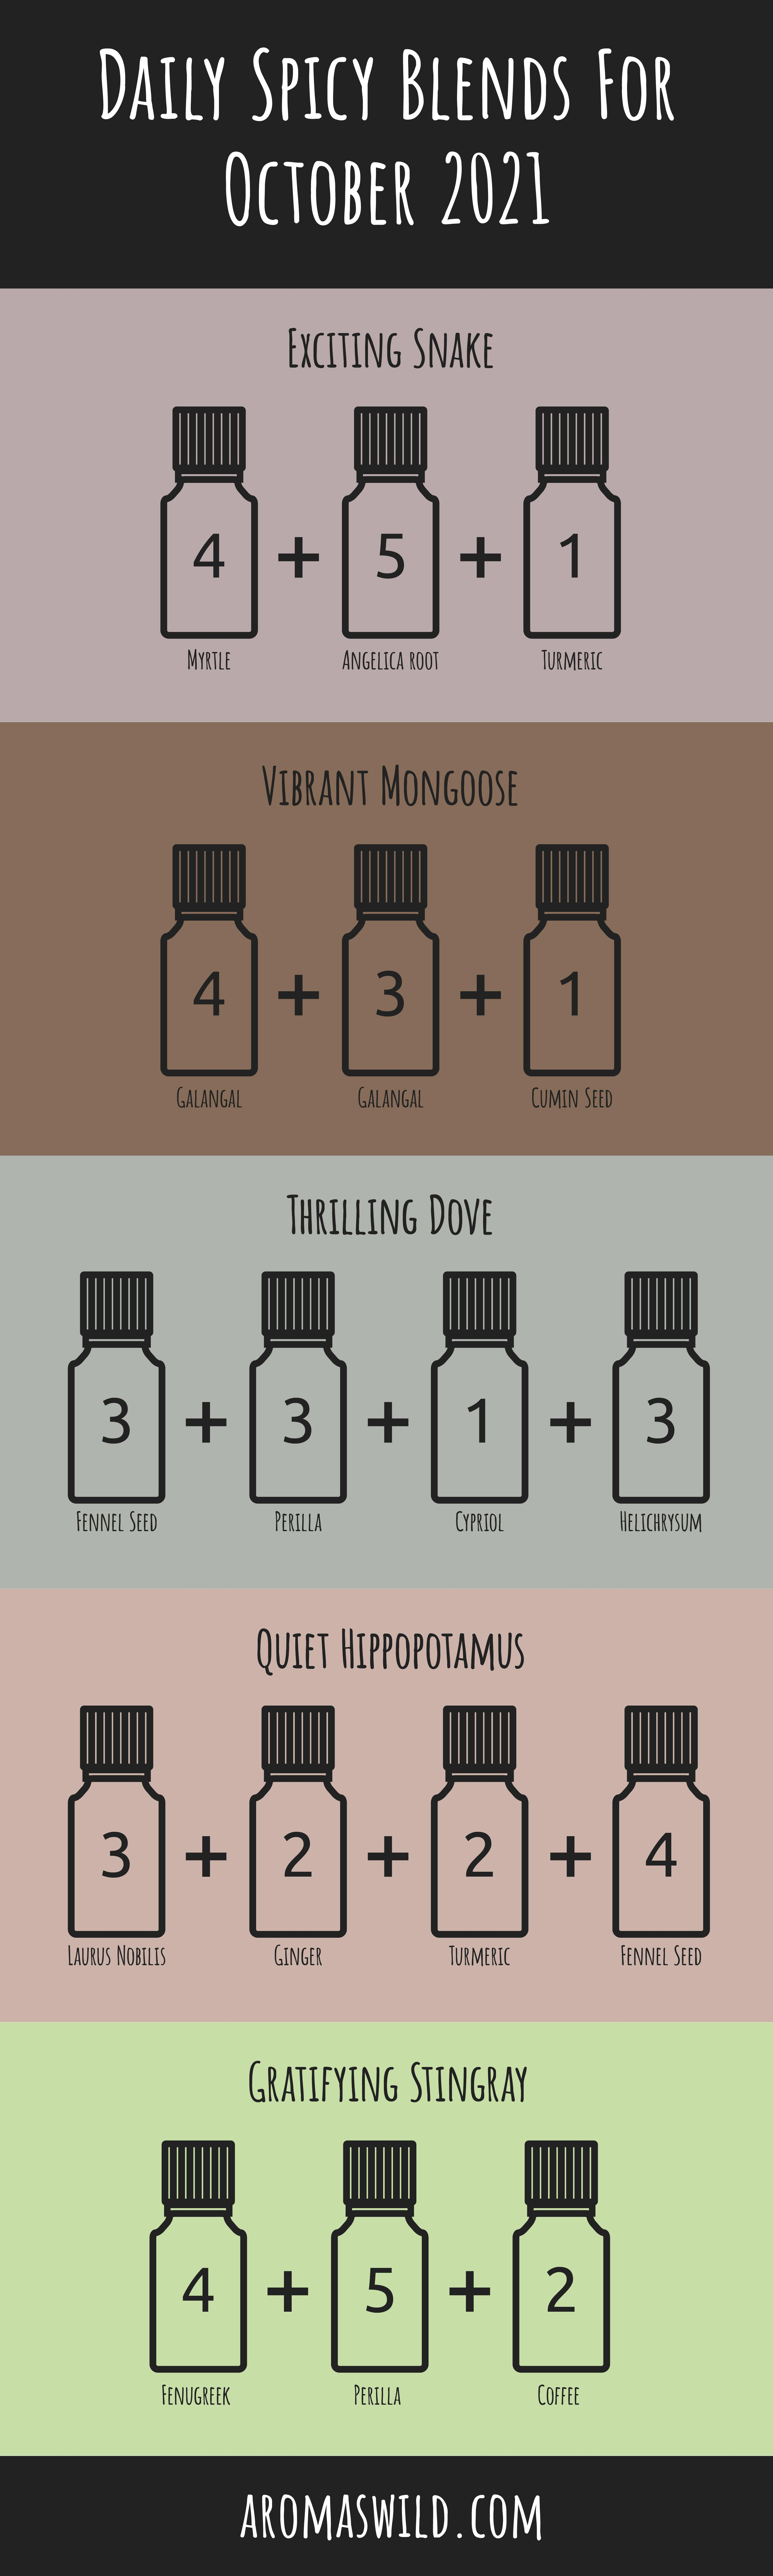 Zesty Essential Oil Recipes For Diffuser – Daily Spicy Blends For March 22 October 2021